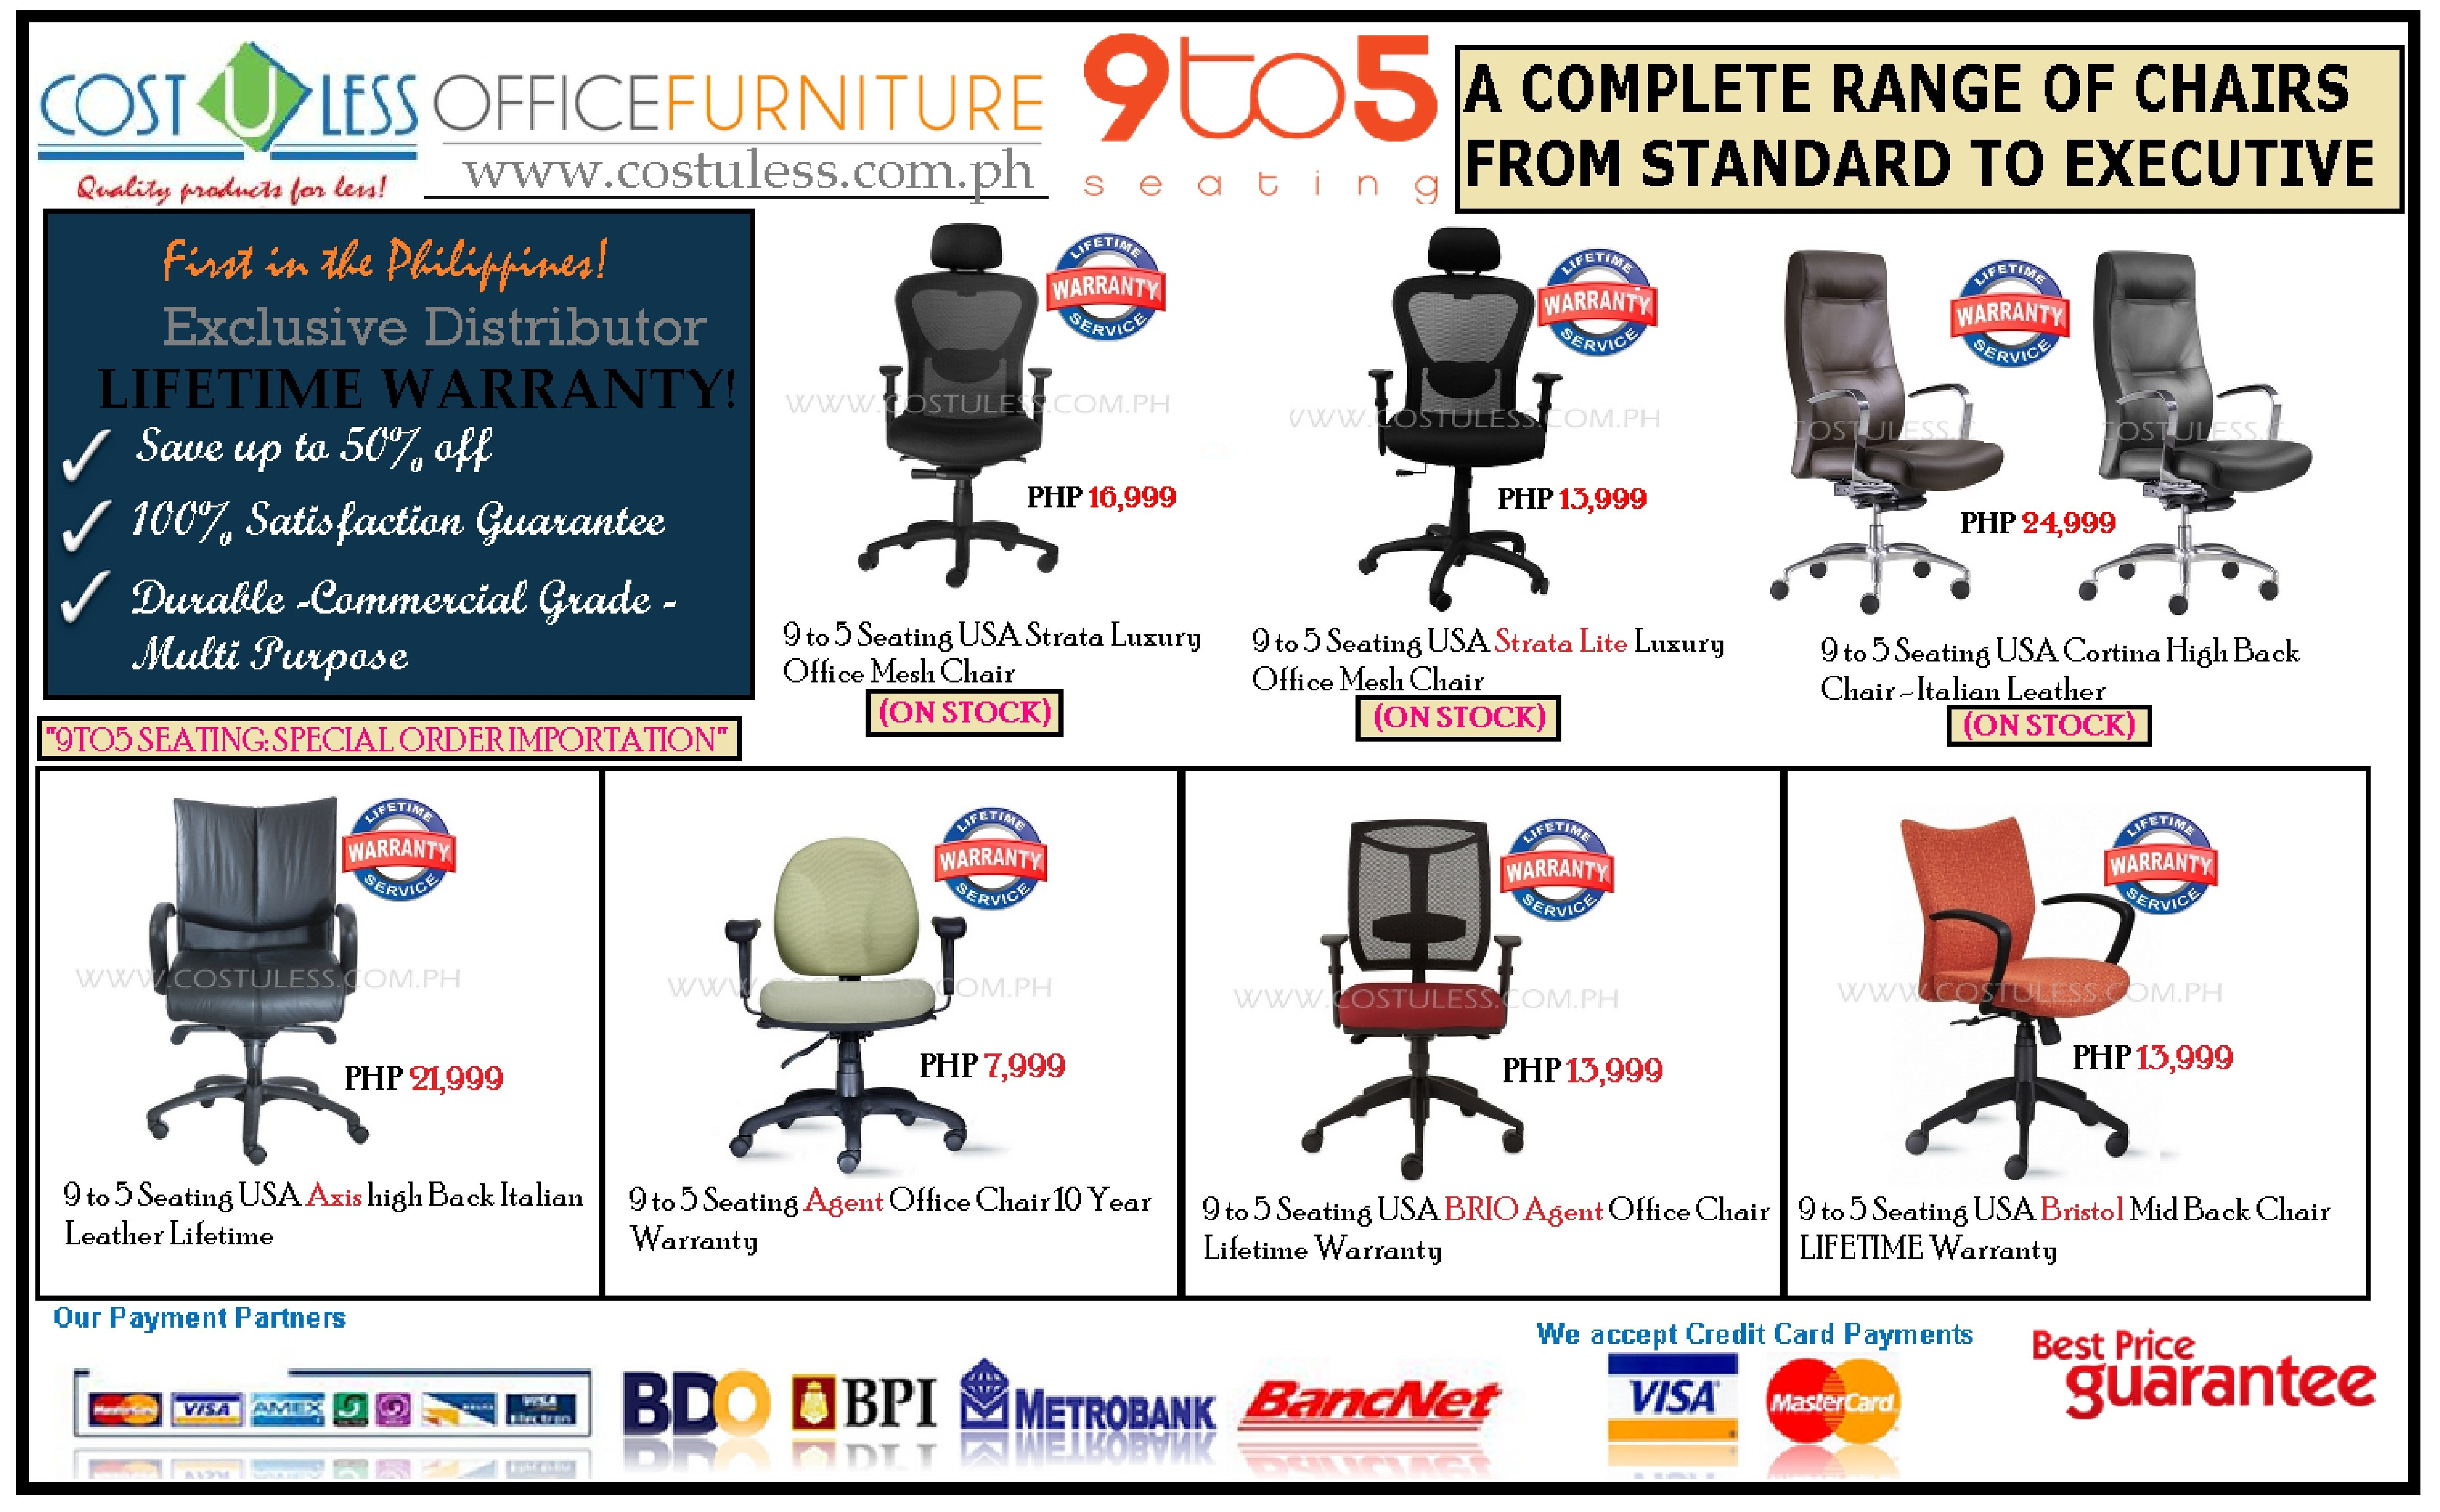 Office Furniture Office Chair Sale Cost U Less Get Big Discount